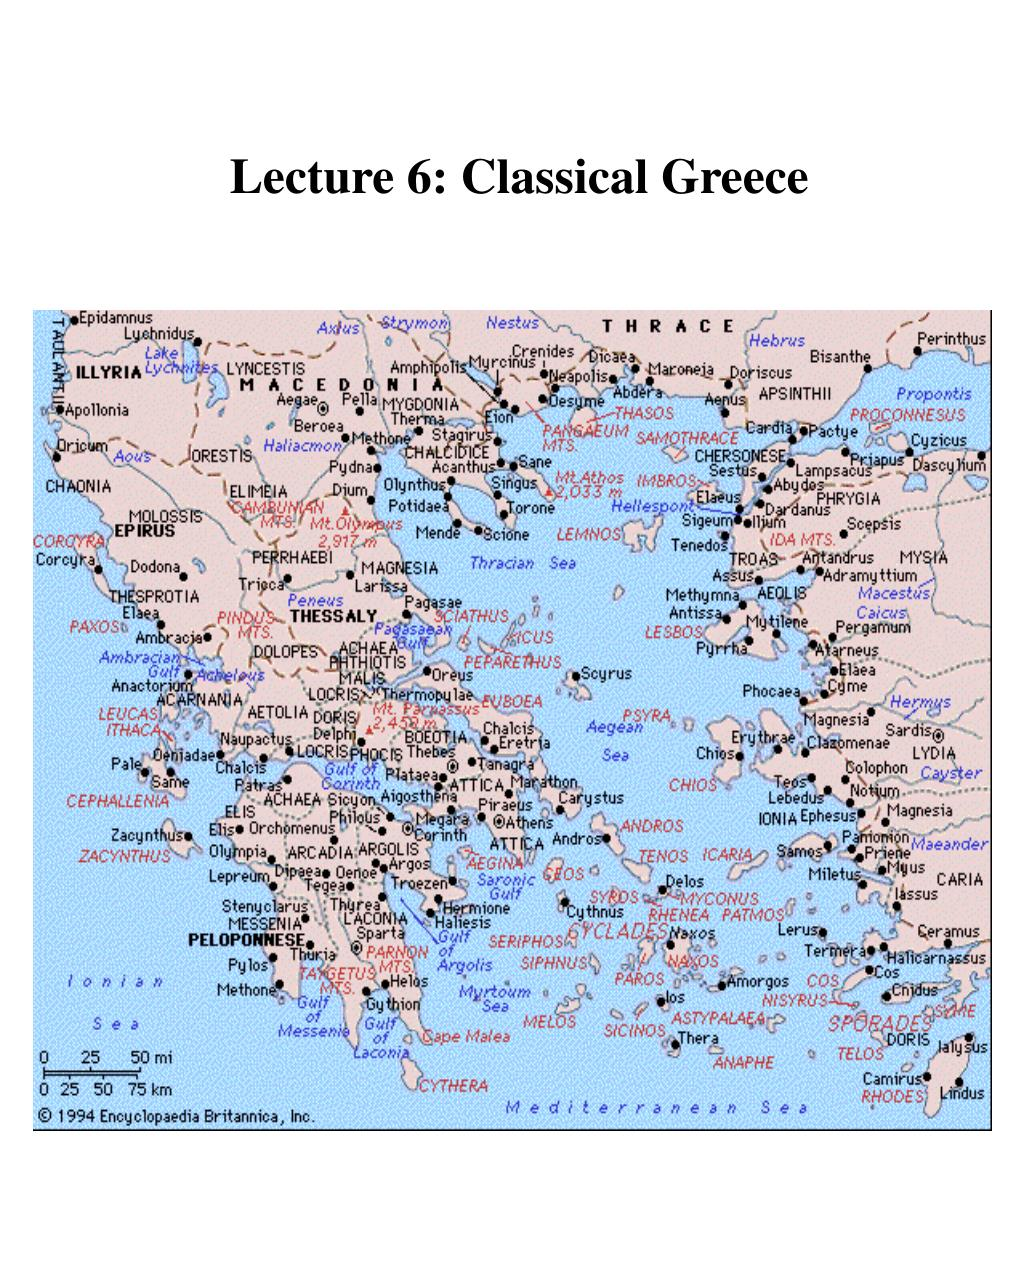 Lecture 6: Classical Greece